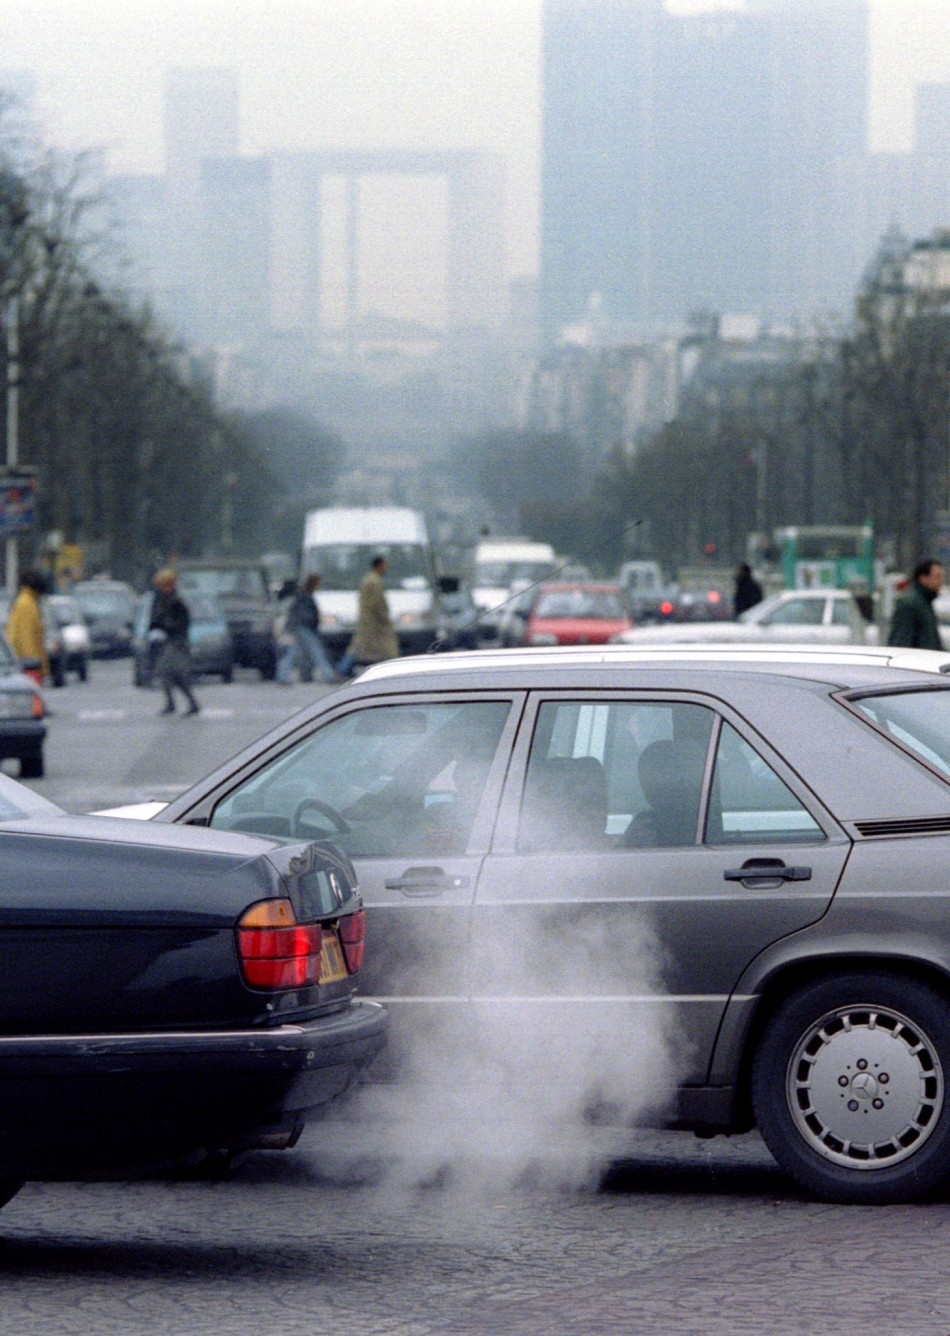 Diesel Exhausts Fumes Causes Cancer, Says WHO Researchers